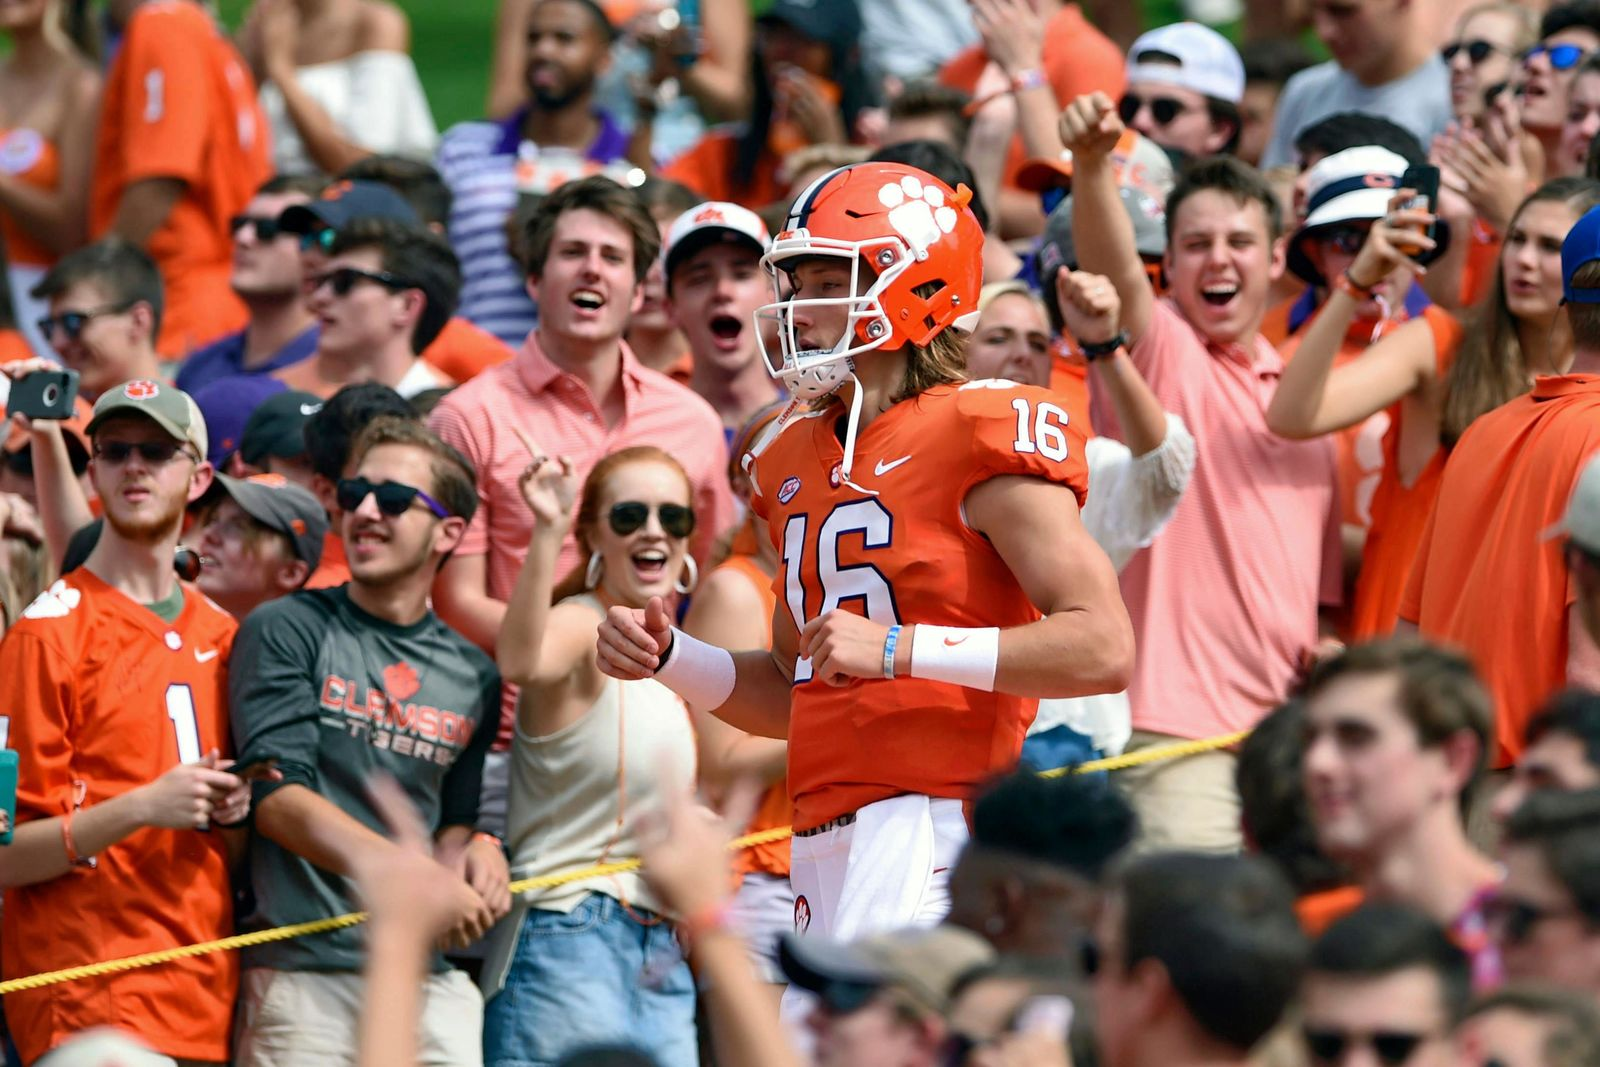 "FILE - In this Sept. 29, 2018, file photo, Clemson quarterback Trevor Lawrence runs down ""The Hill"" before the start of an NCAA college football game against Syracuse, in Clemson, S.C. For the first time, the defending national champion Tigers are No. 1 in The Associated Press preseason Top 25 presented by Regions Bank, Monday, Aug. 19, 2019. Clemson won its second national title in three seasons behind freshman quarterback Trevor Lawrence to claim equal standing with Alabama at the top of the sport. (AP Photo/Richard Shiro, File)"